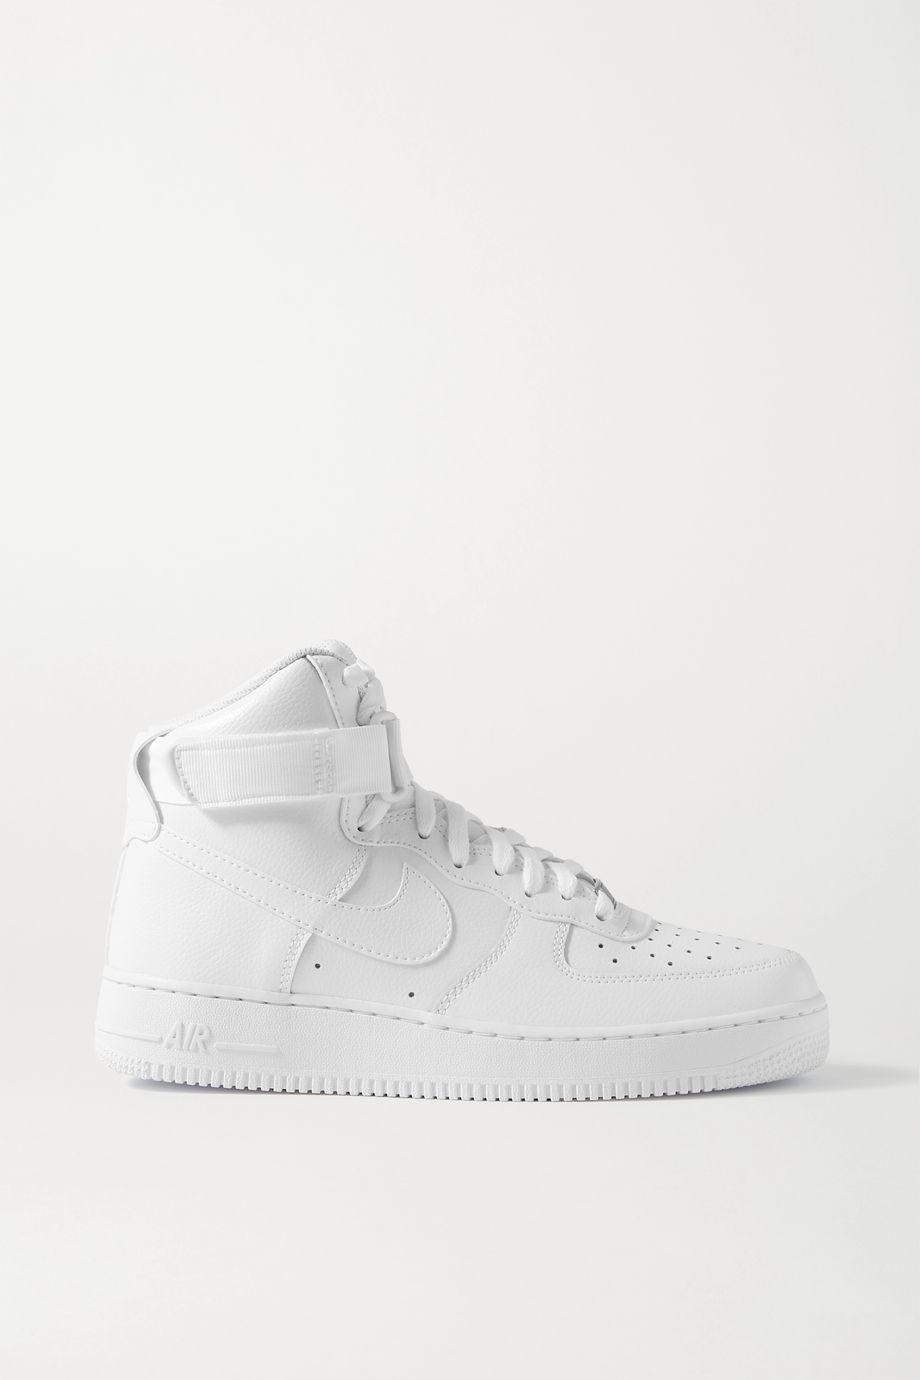 Nike Air Force 1 leather high-top sneakers